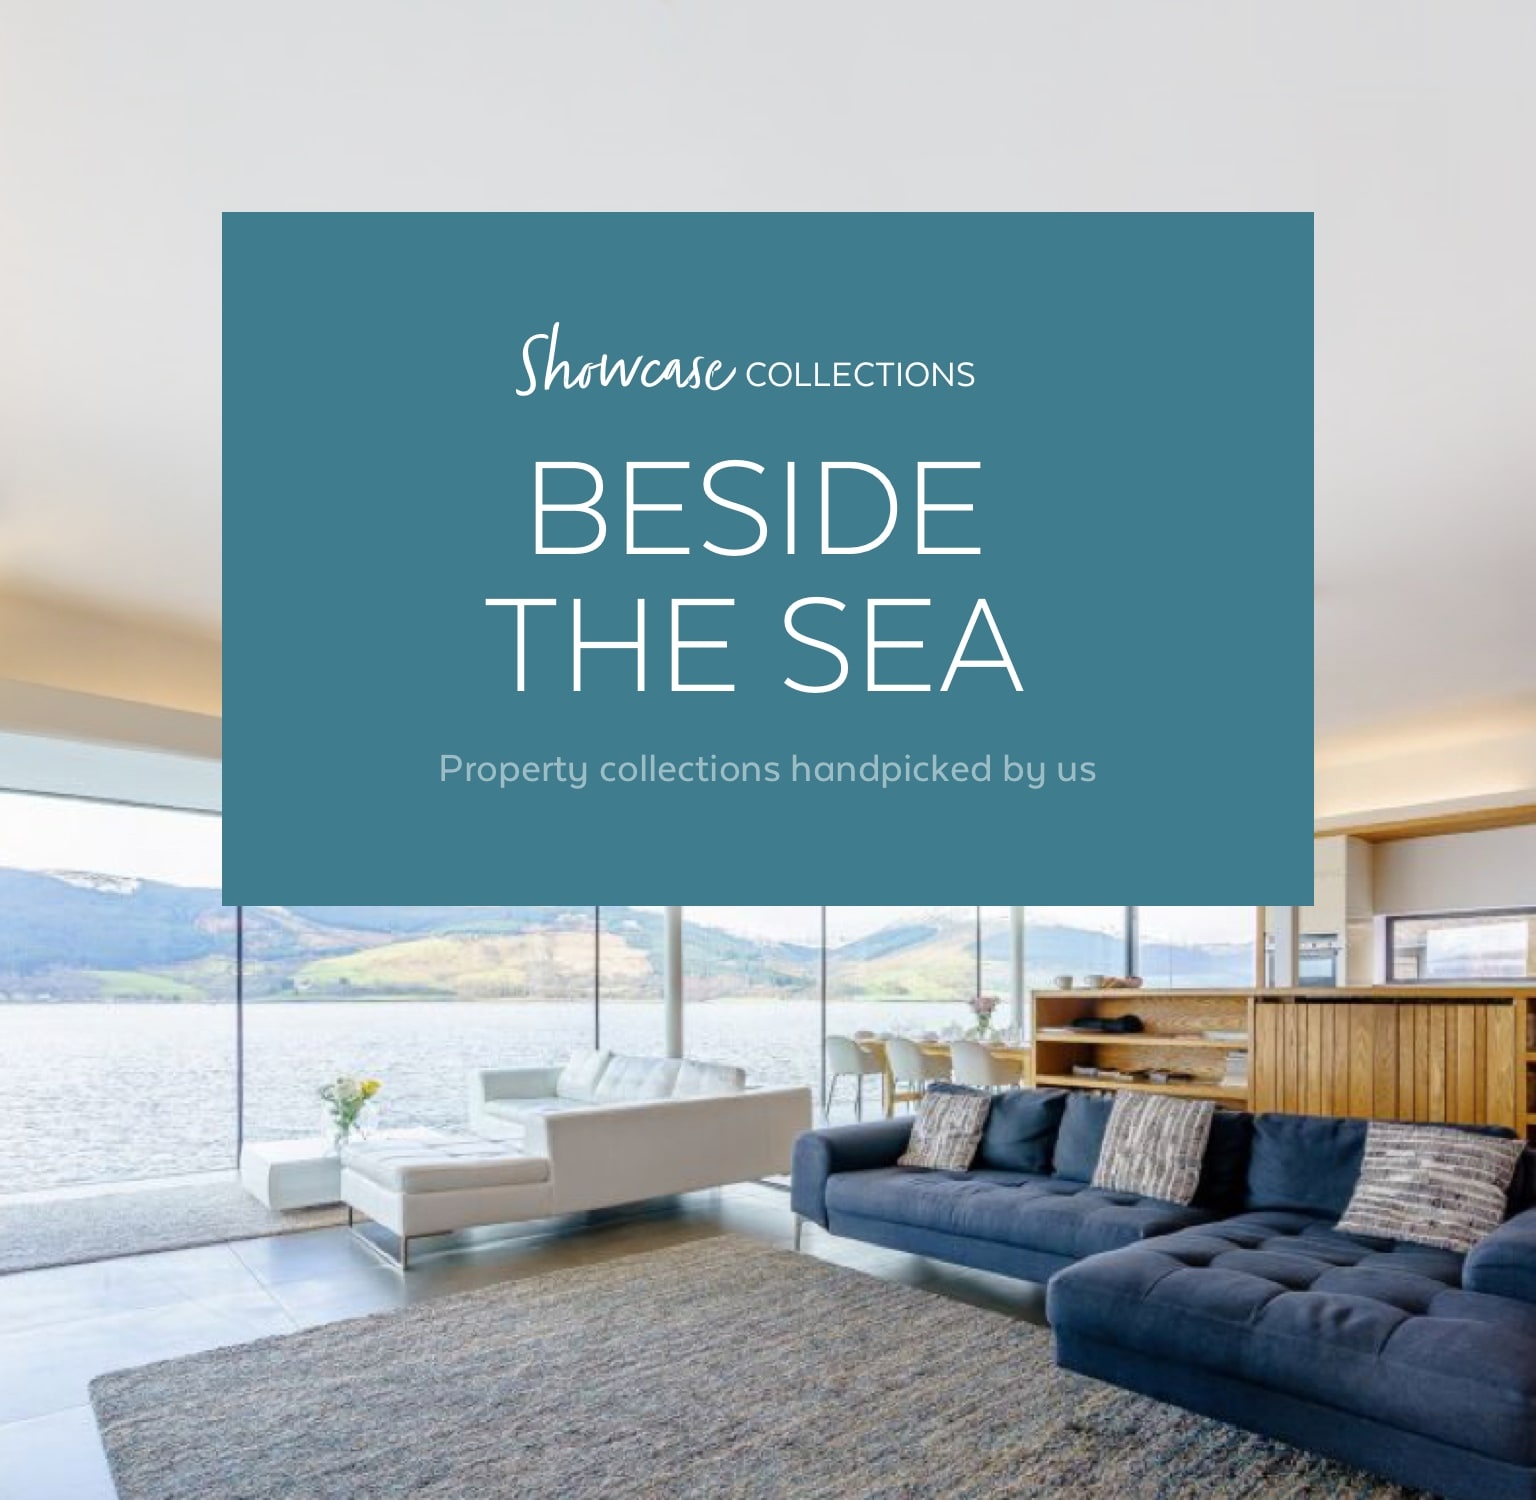 Beside the Sea Showcase Collection